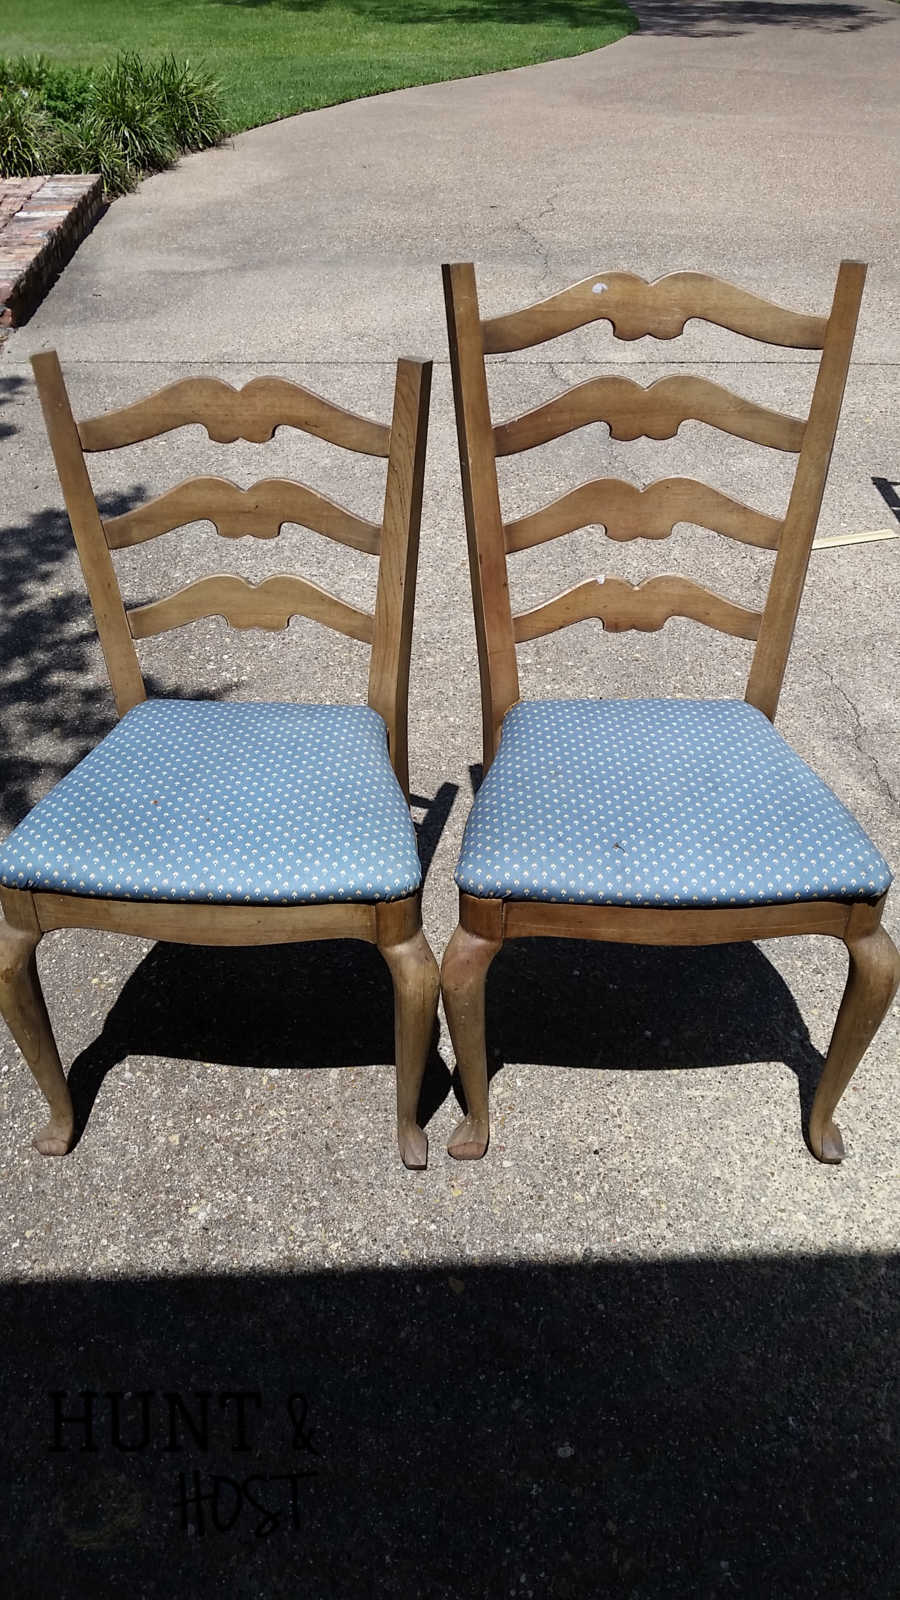 These chairs matched at one time but